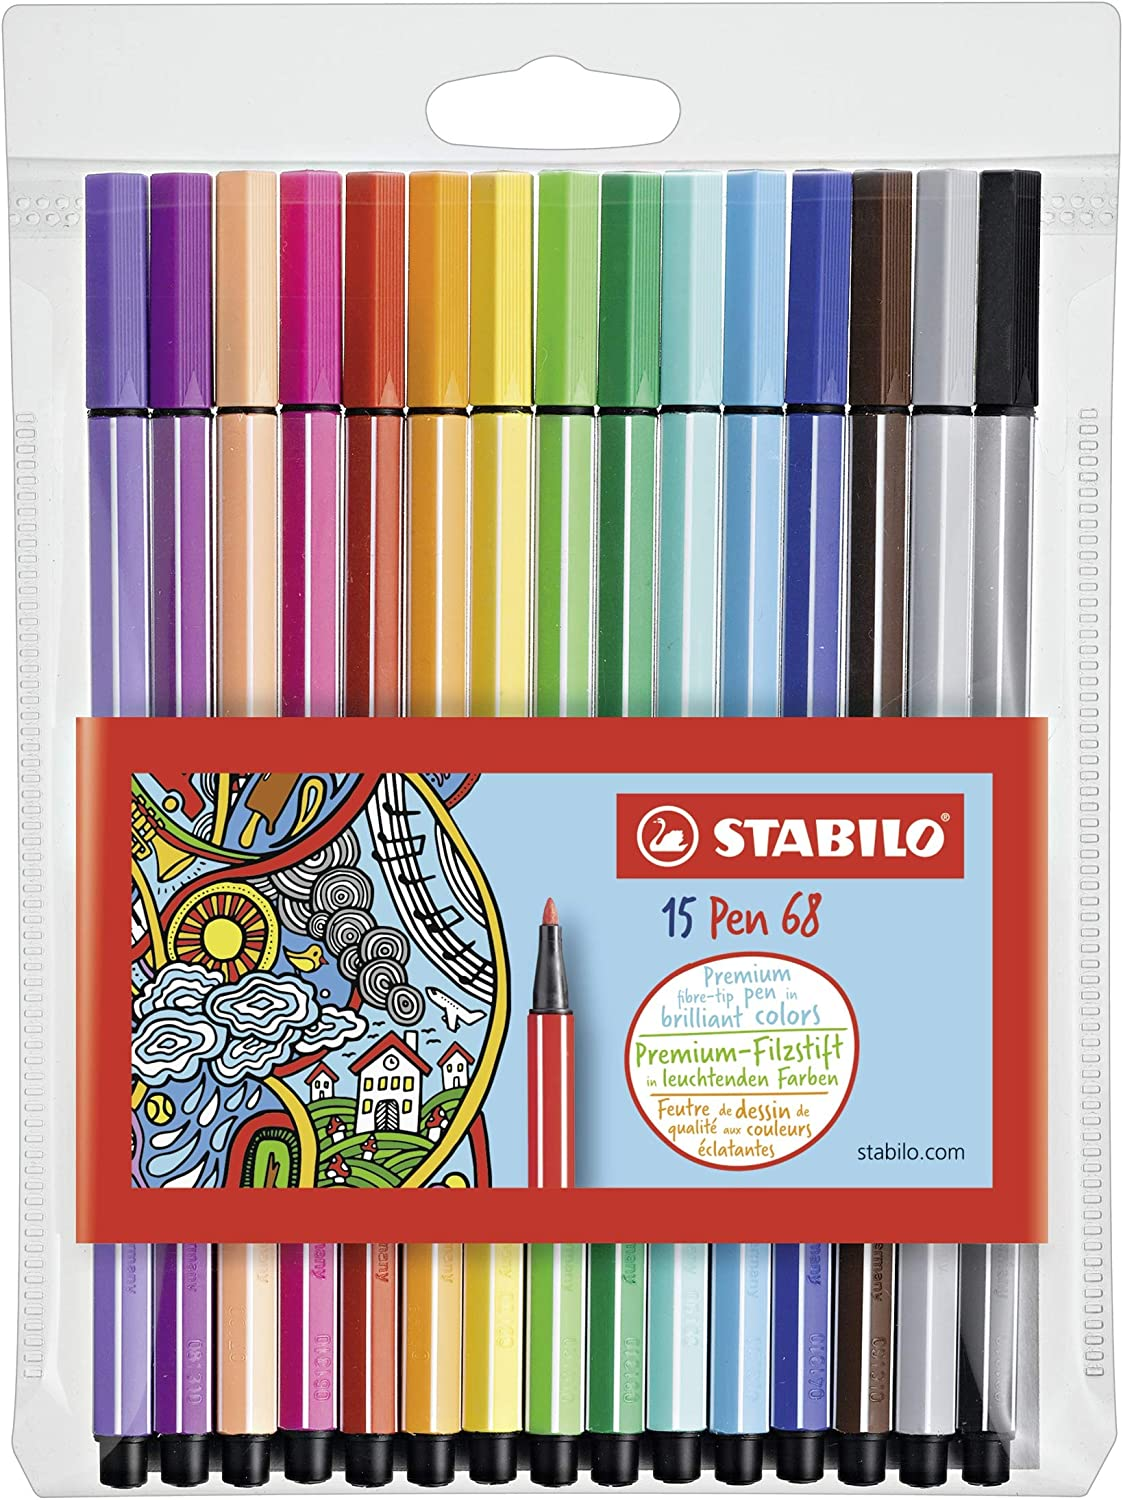 Rotulador STABILO Pen 68 - Estuche con 15 colores: Amazon.es ...